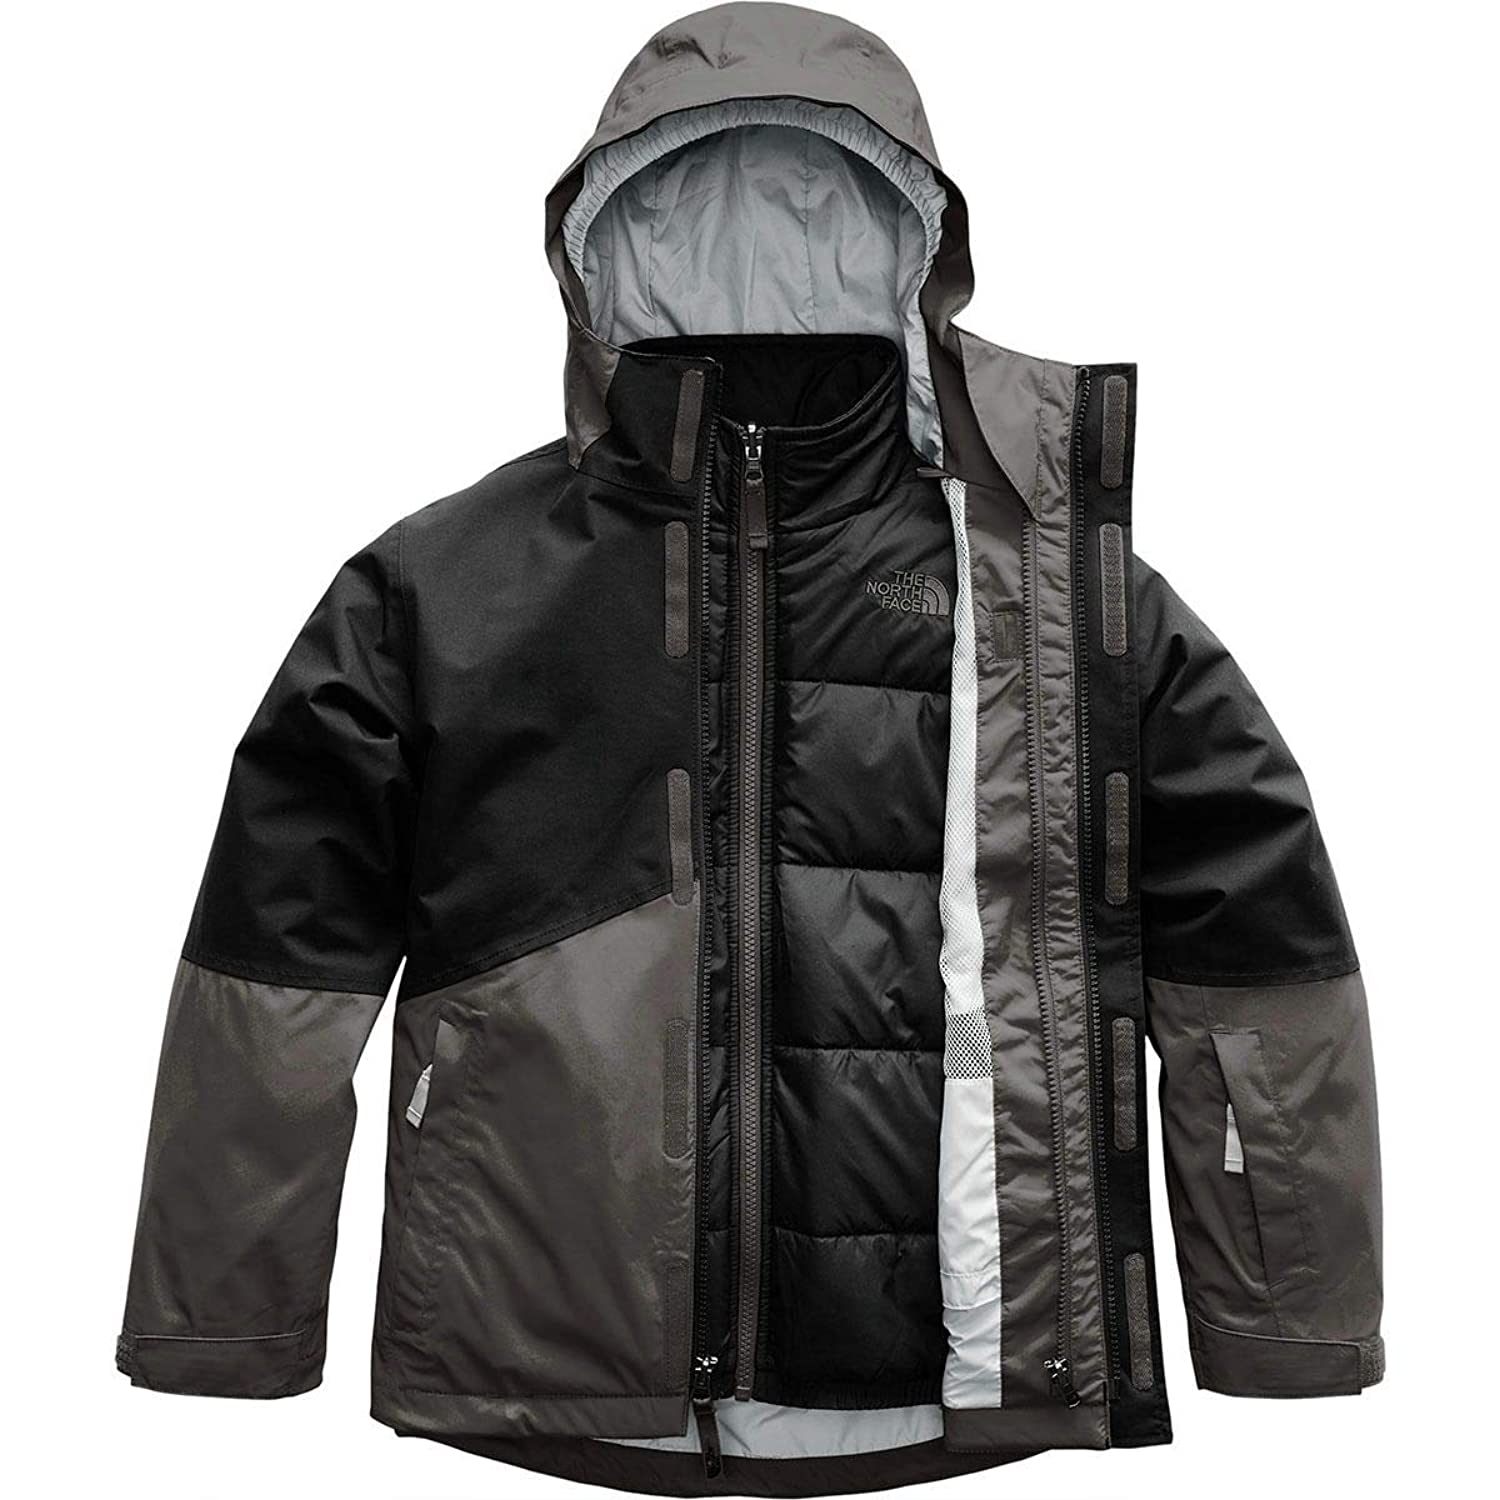 The North Face OUTERWEAR ボーイズ US サイズ: Small カラー: グレー